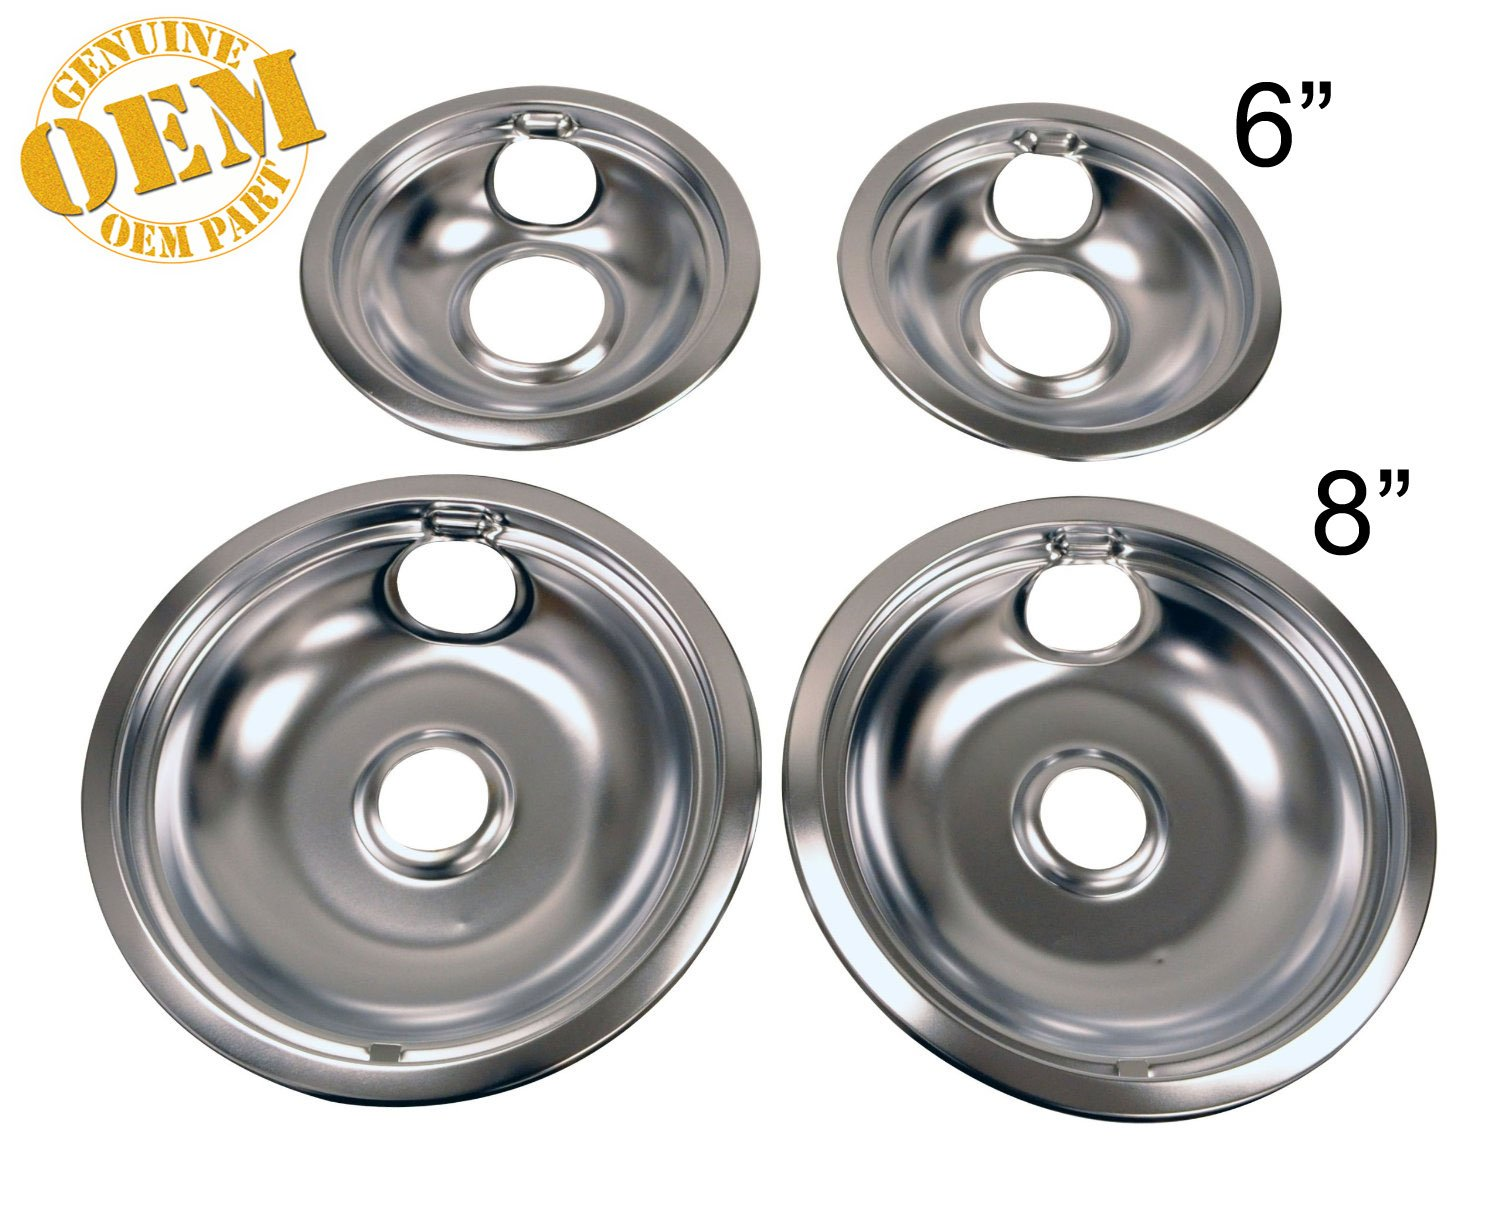 INCLUDES 2-6 AND 2-8 NEW FACTORY ORIGINAL CHROME OVEN COMPLETE DRIP 4 PAN BOWL SET PS2366565